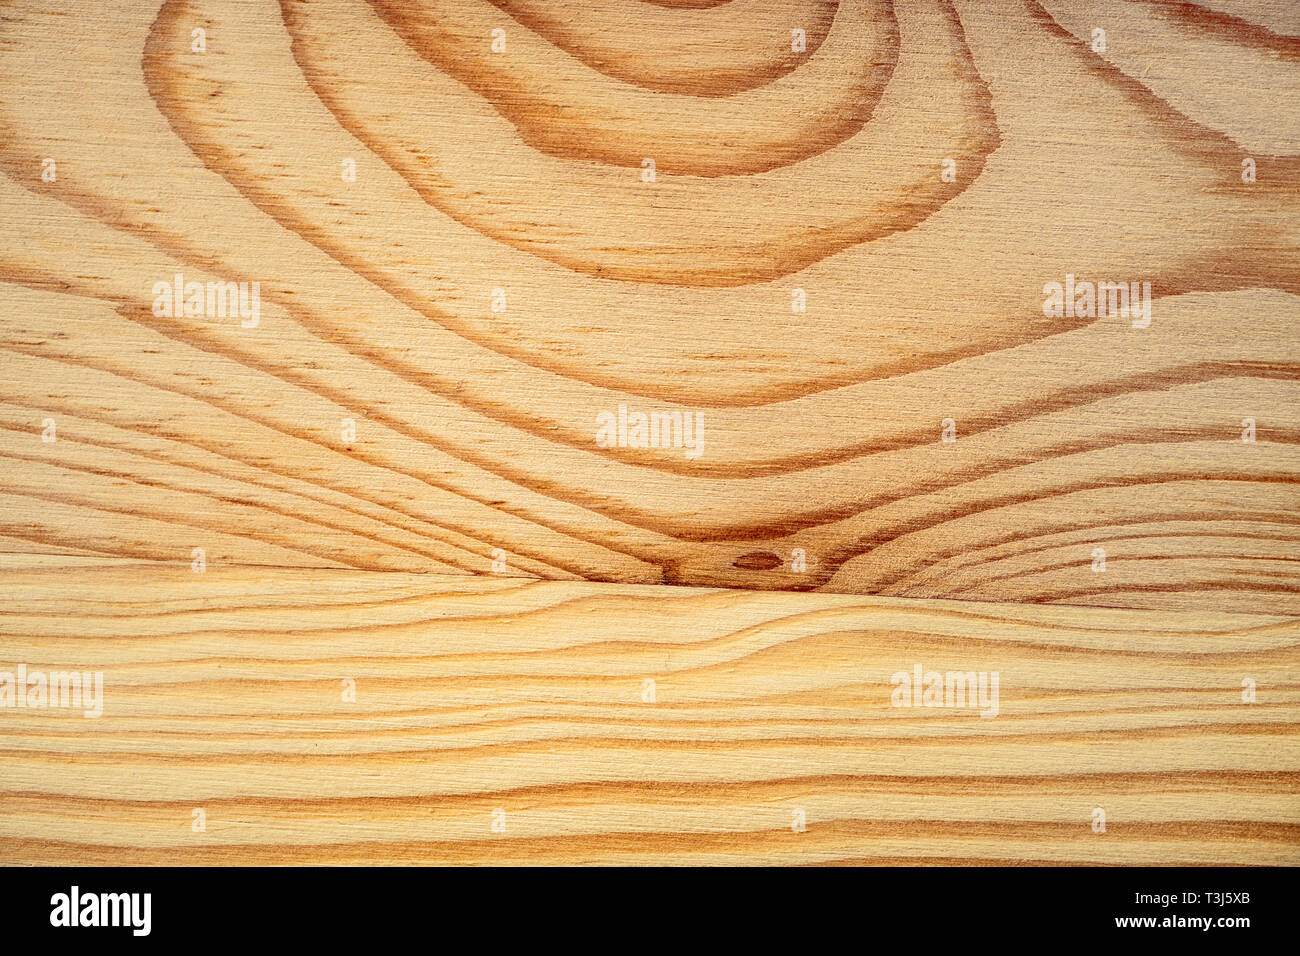 Kiefer Holzstruktur Pine Wood Plank Texture Light Stockfotos Pine Wood Plank Texture